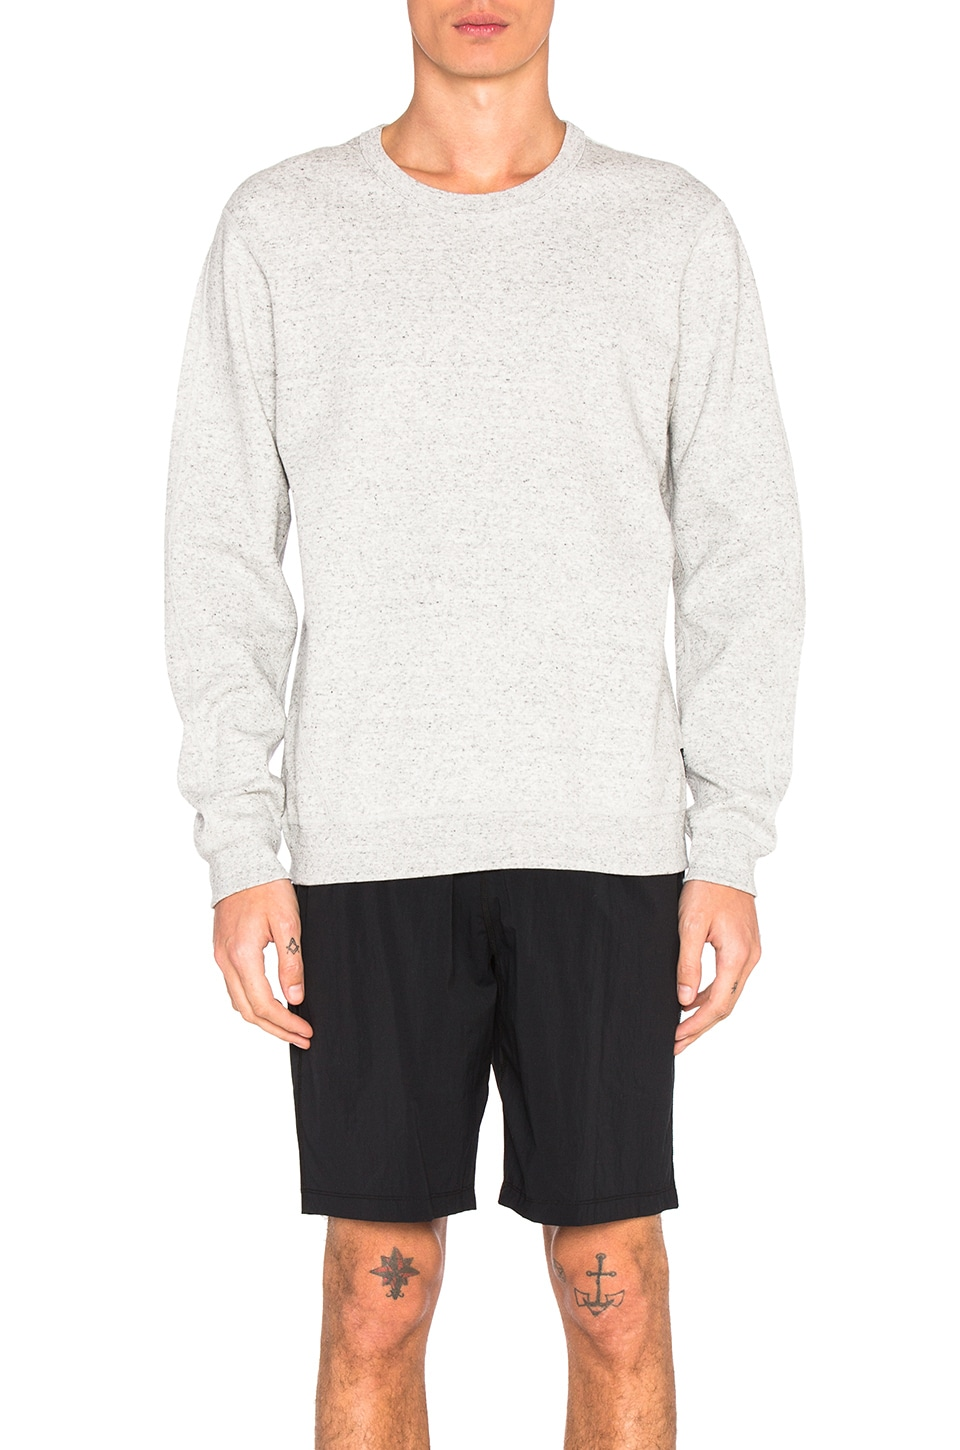 Bonded Terry Crewneck by Reigning Champ